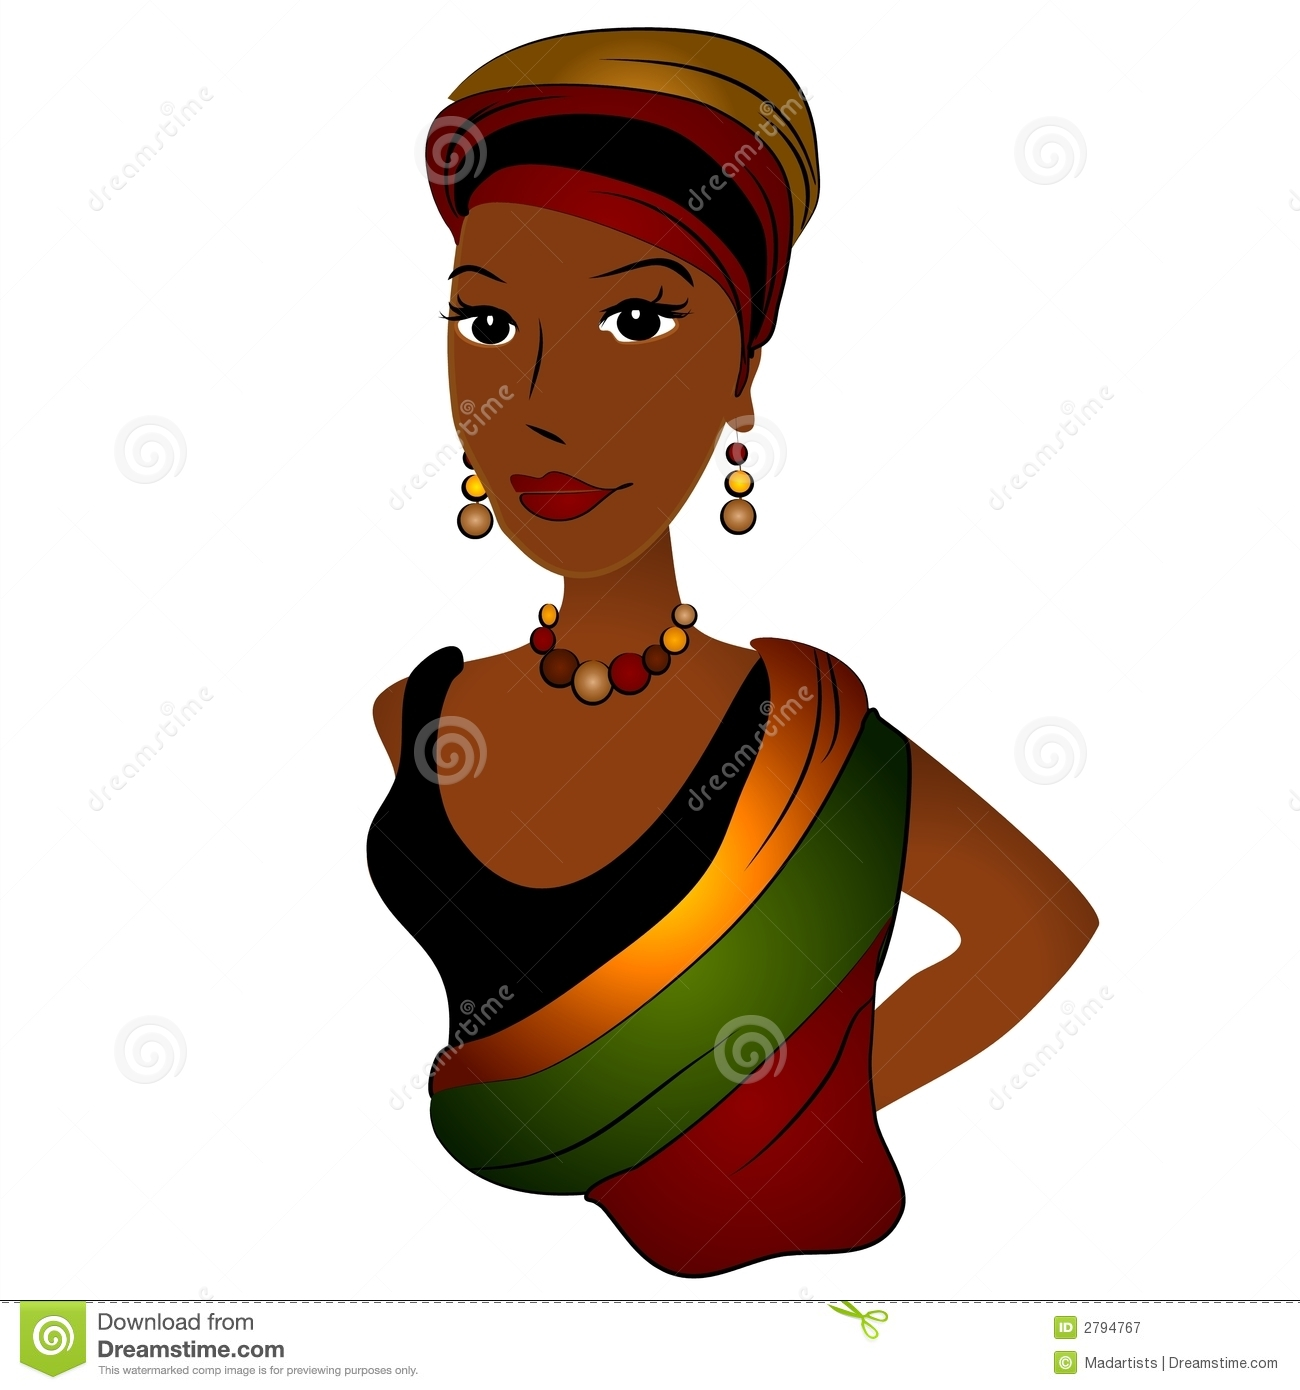 African Lady Clipart.